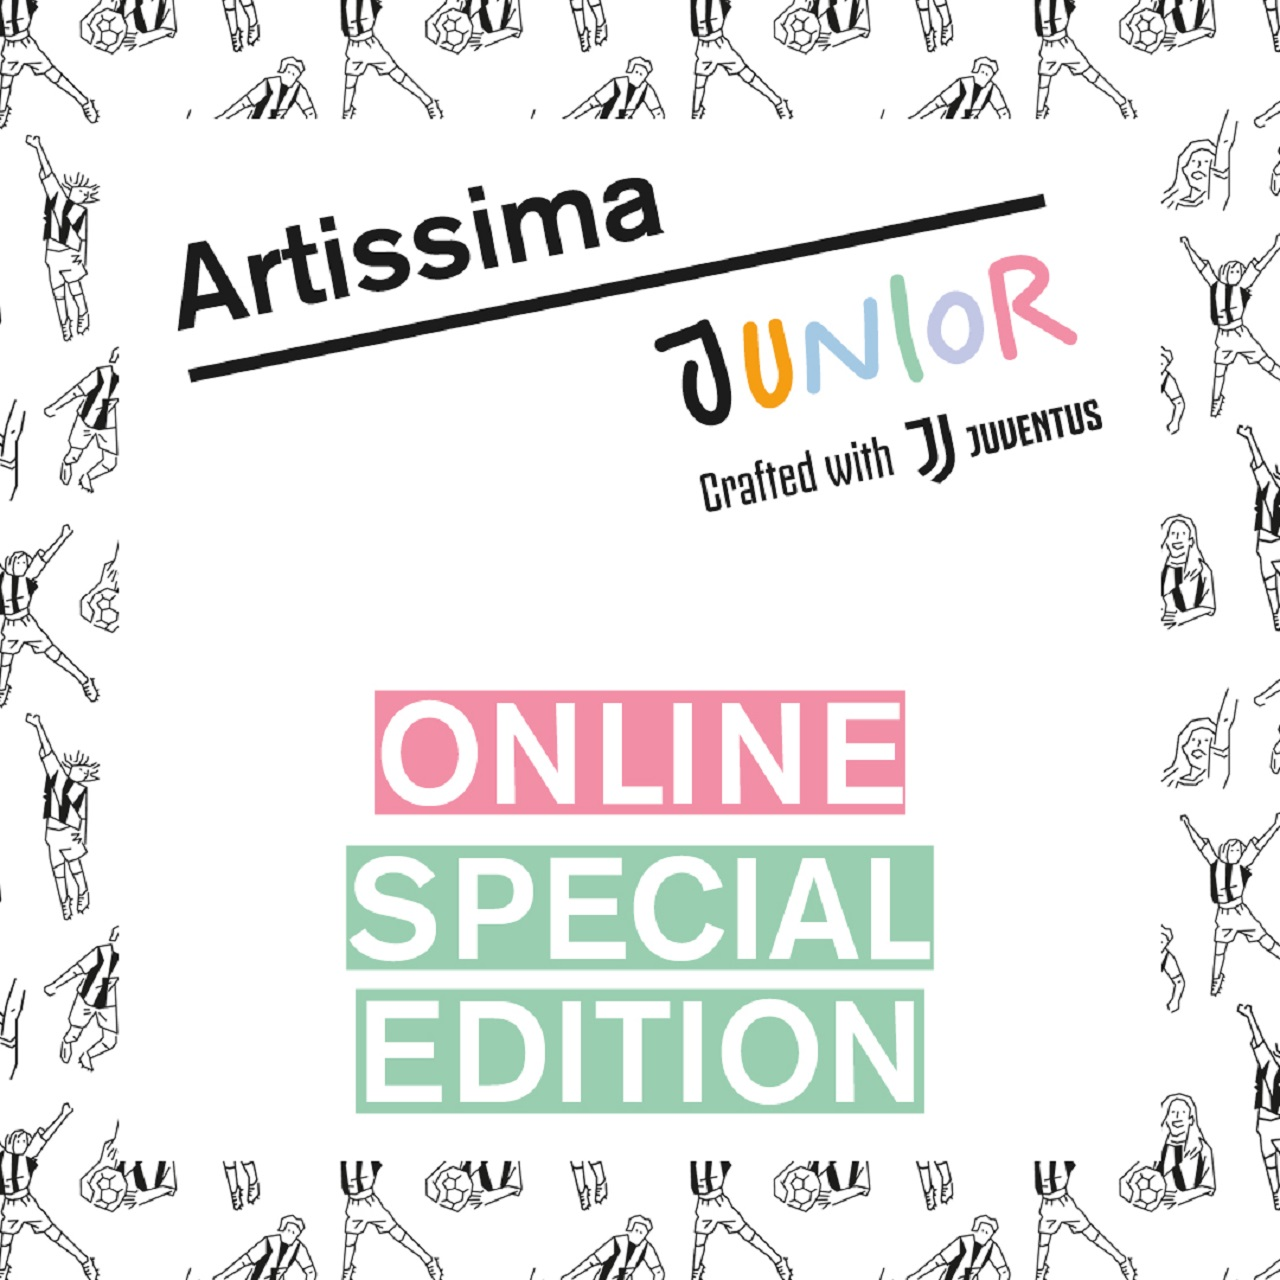 Artissima Junior, crafted with Juventus – online special edition